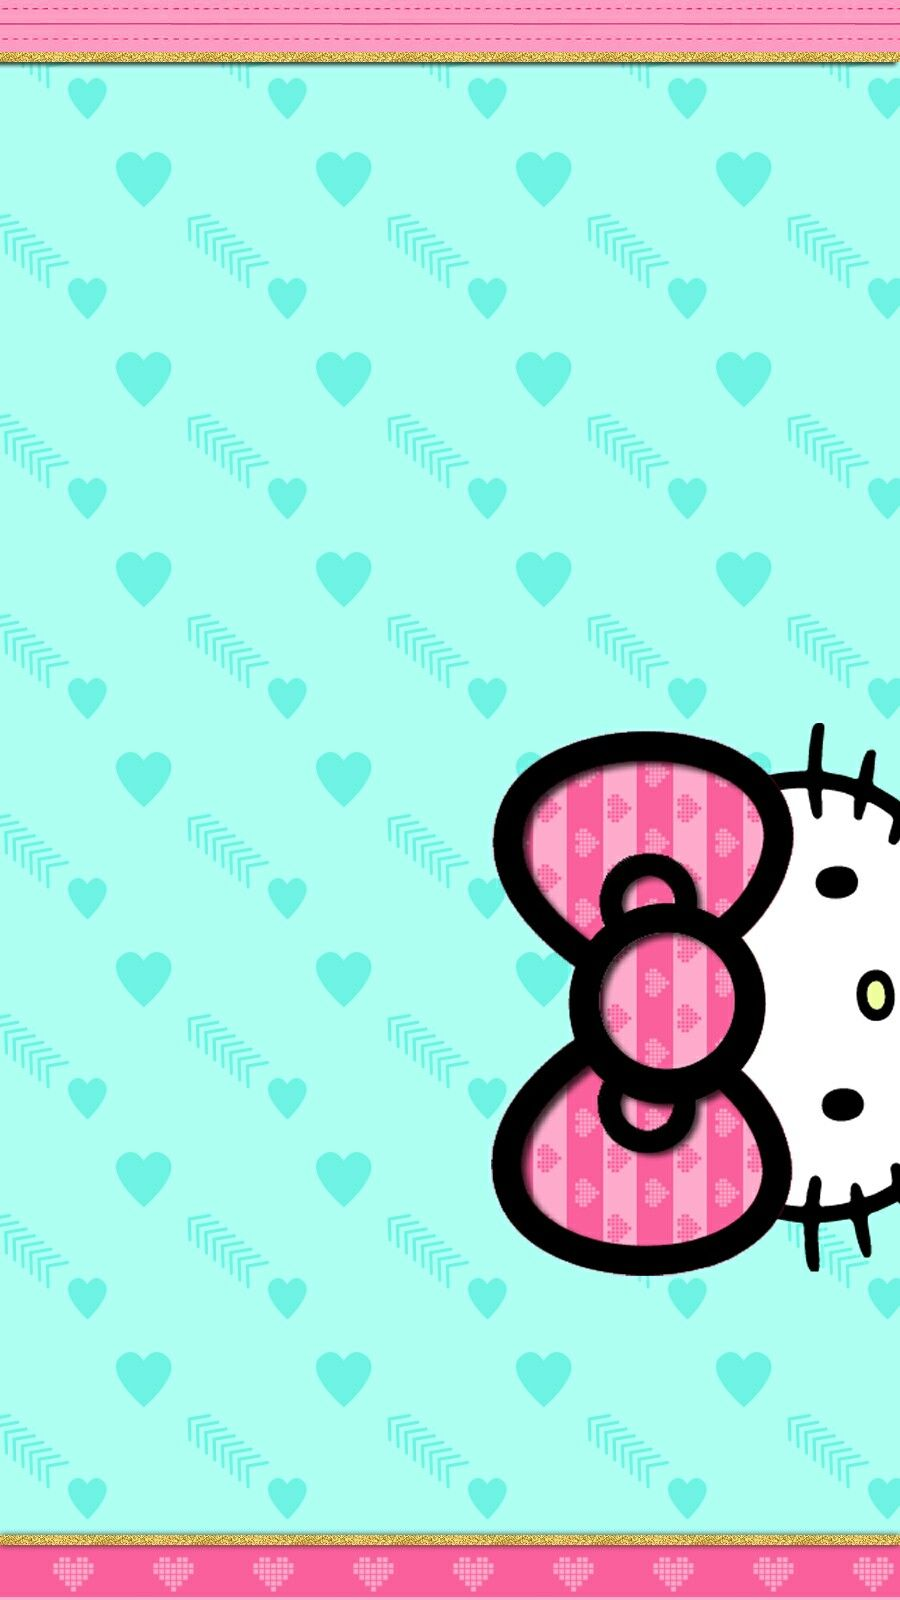 Must see Wallpaper Hello Kitty Turquoise - 7df94bdb858c632403df0610ad38606c  Picture_154191.jpg